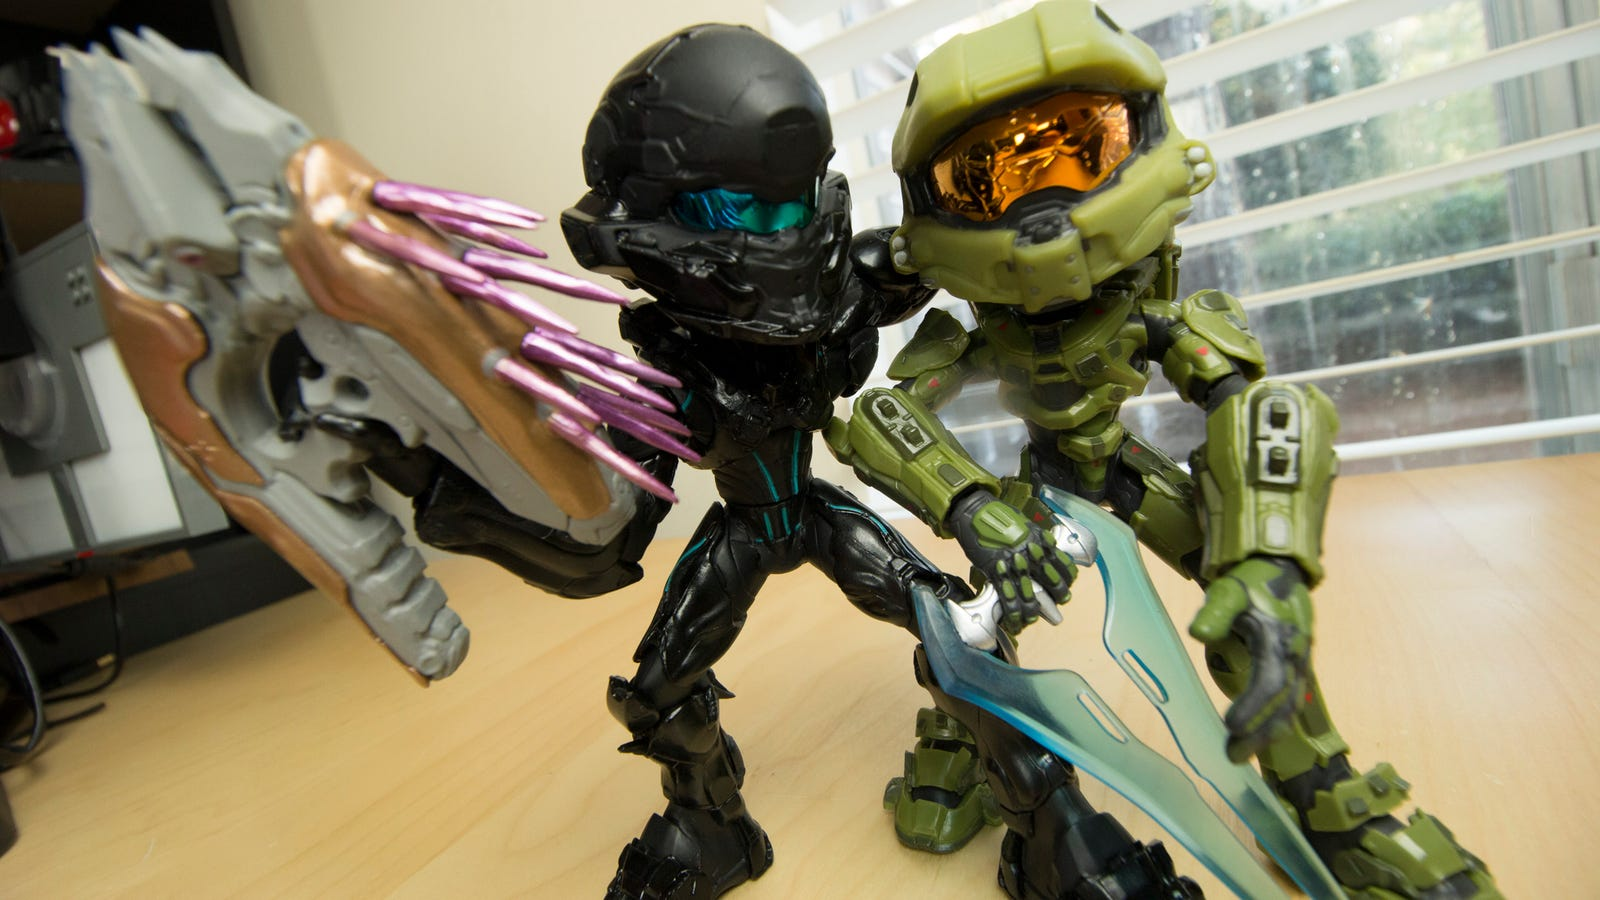 Big-Headed Master Chief And Locke Say Hey